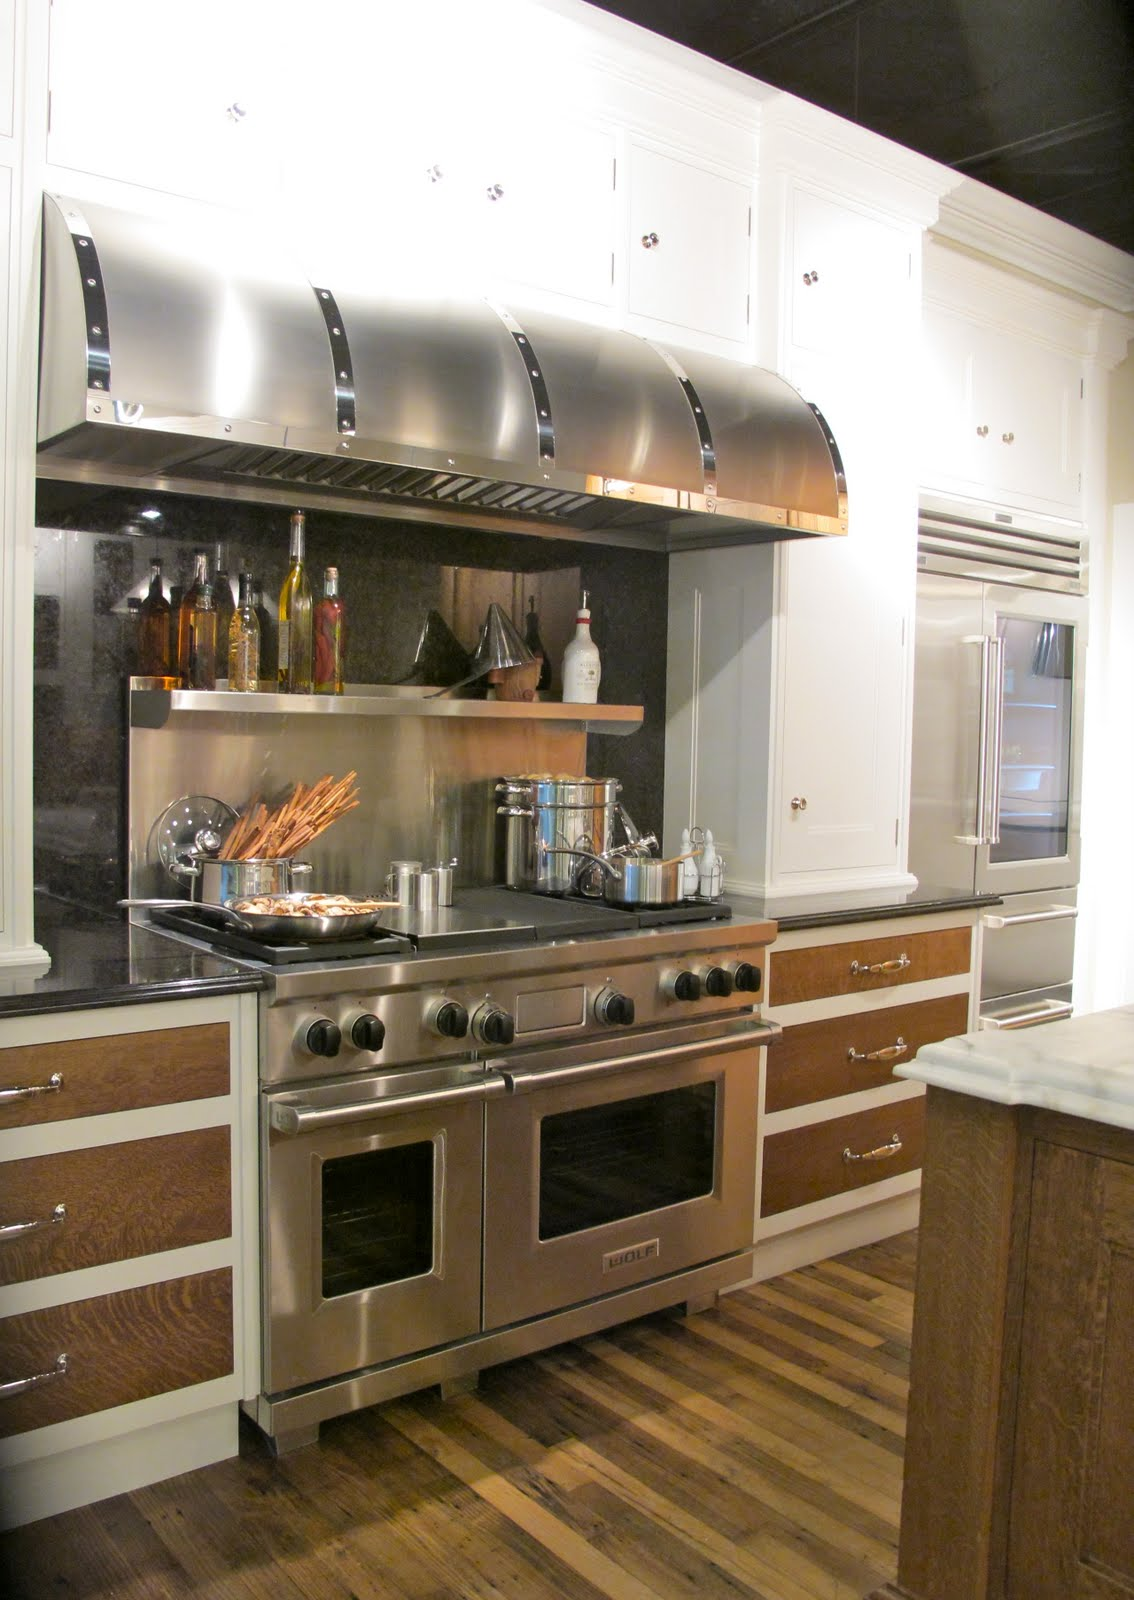 Home Made Kitchen Island Jenny Steffens Hobick: Kitchens | The Most Amazing